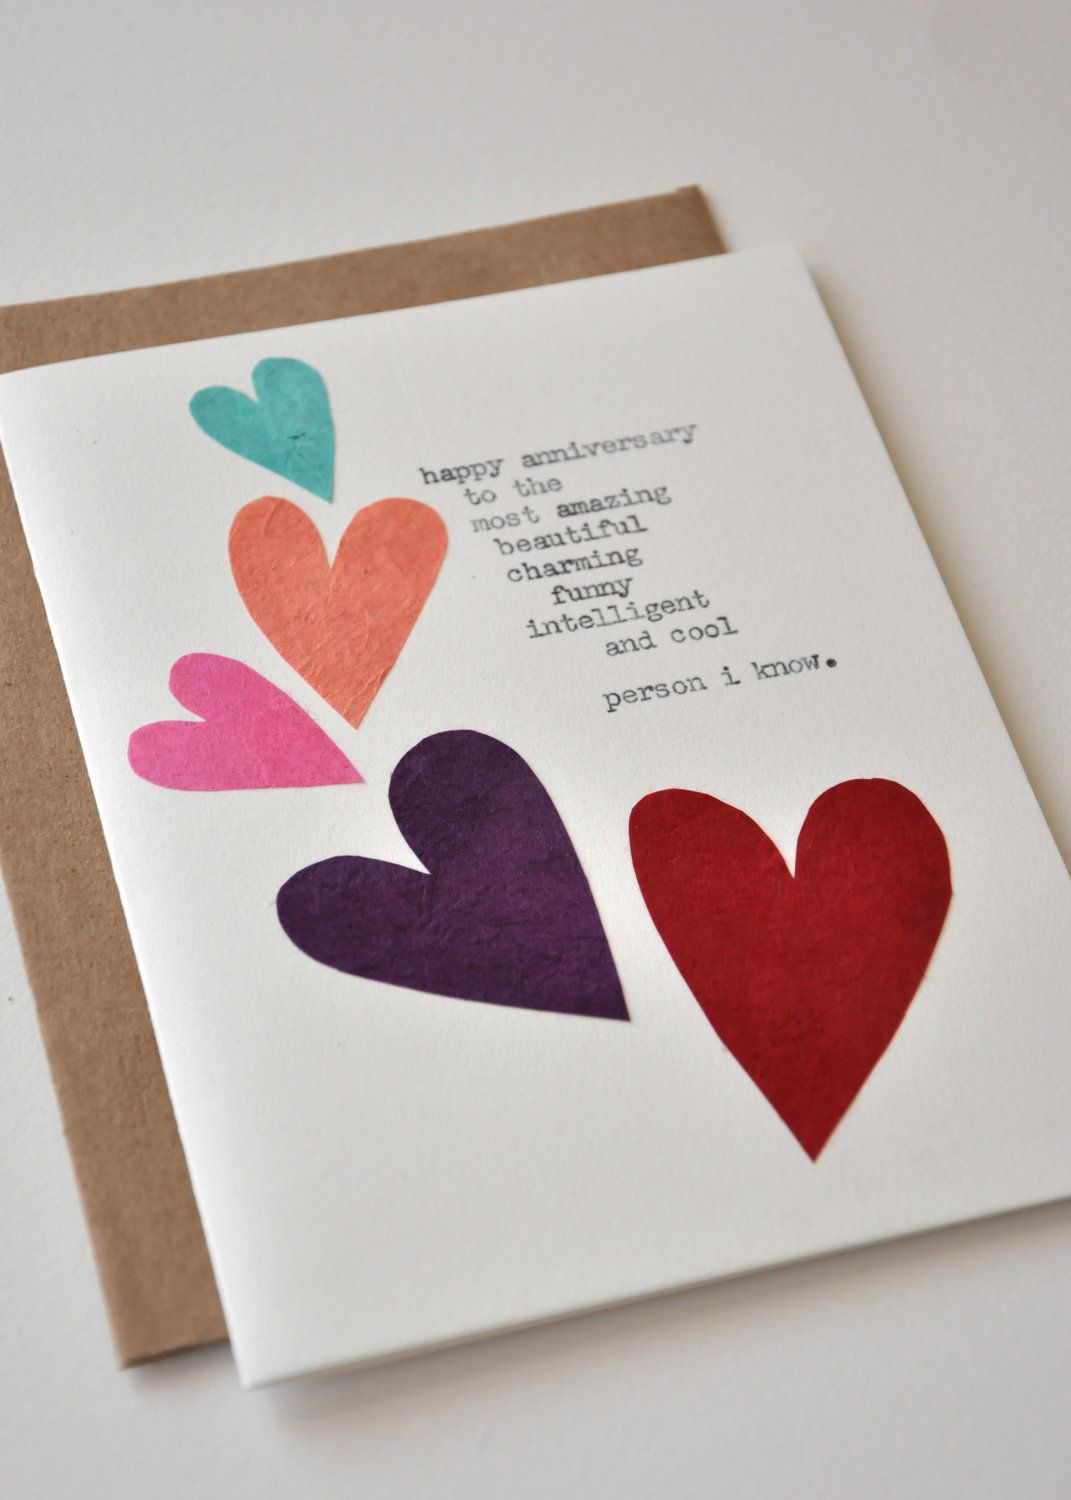 Handmade Birthday Cards For Guys 18 ~ Handmade hearts birthday card for boyfriend or husband with lovely wording homemade